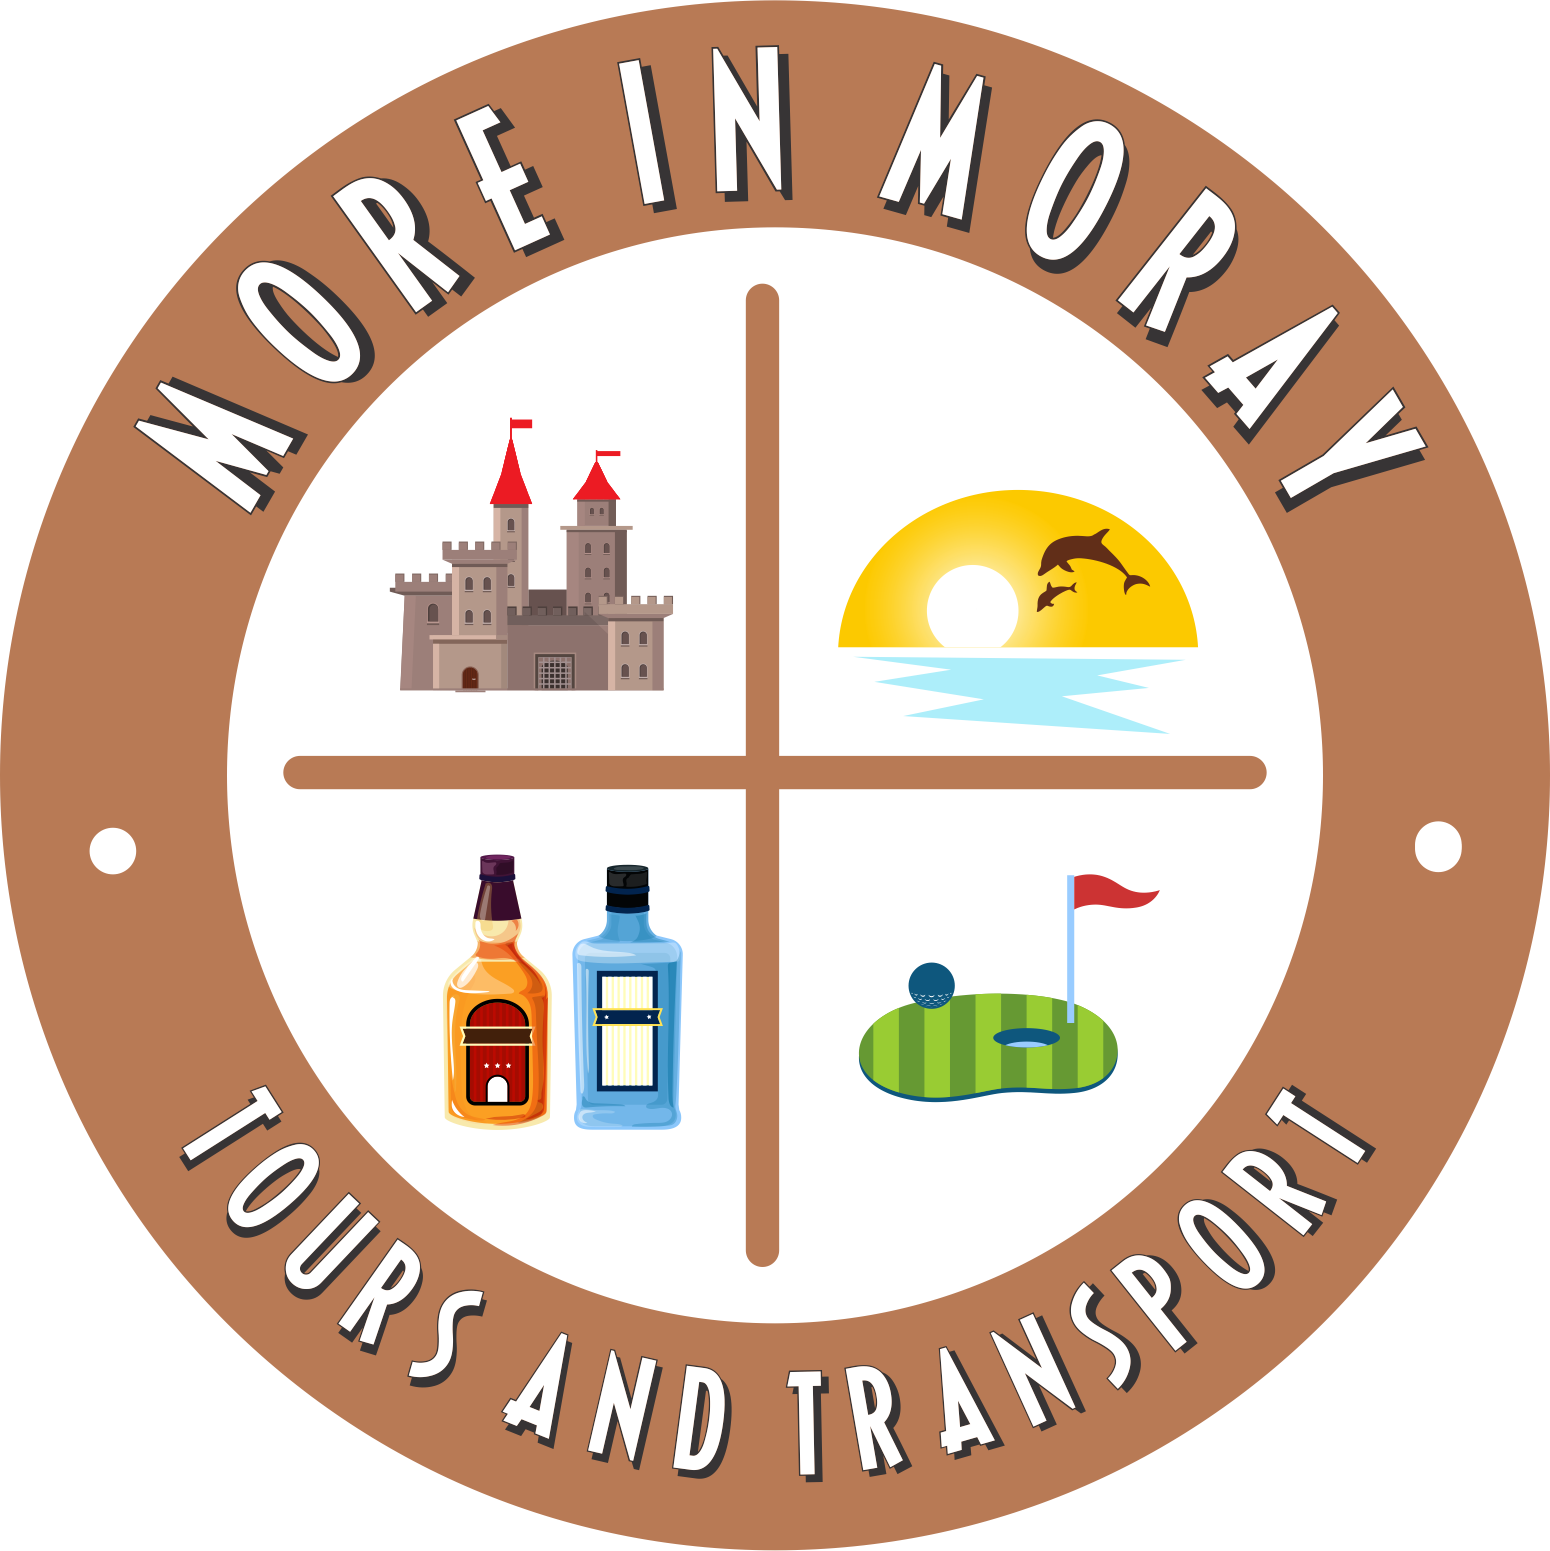 More in Moray Tours and Transport | About Us - More in Moray Tours and Transport